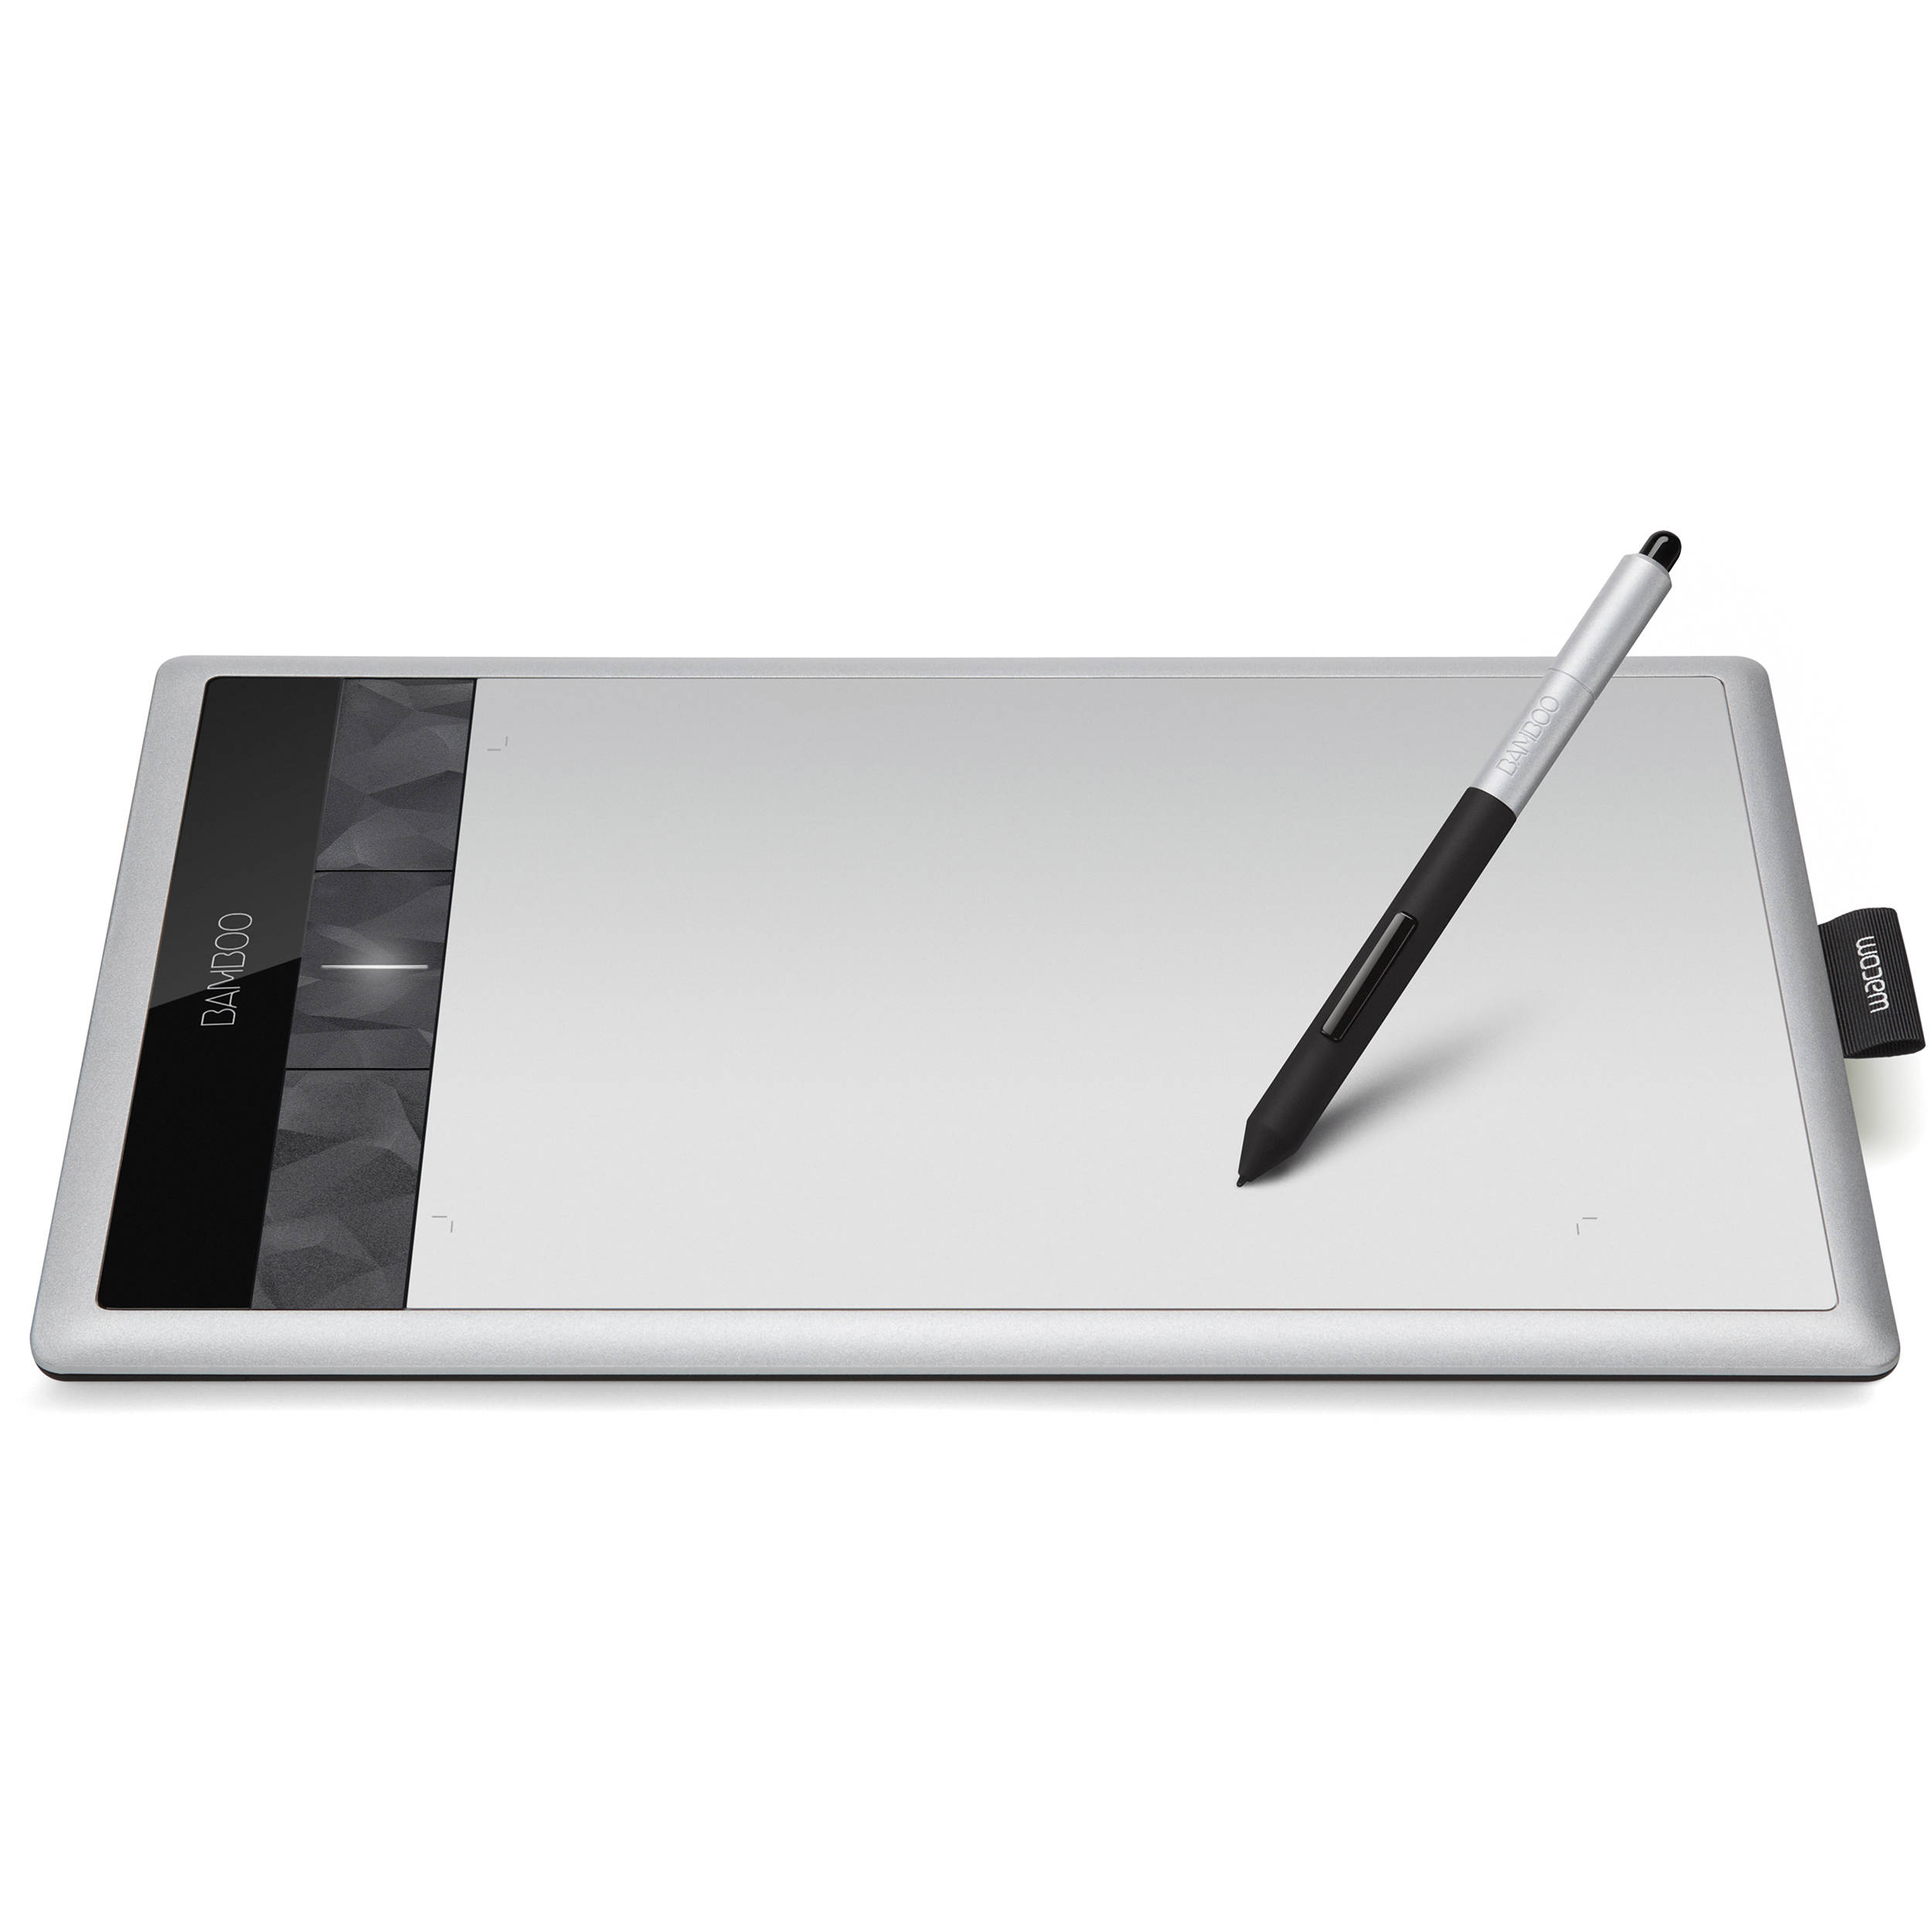 wacom bamboo create digital tablet silver cth670 b h photo rh bhphotovideo com Old Wacom Bamboo Fun Wacom Bamboo Fun CTE-450